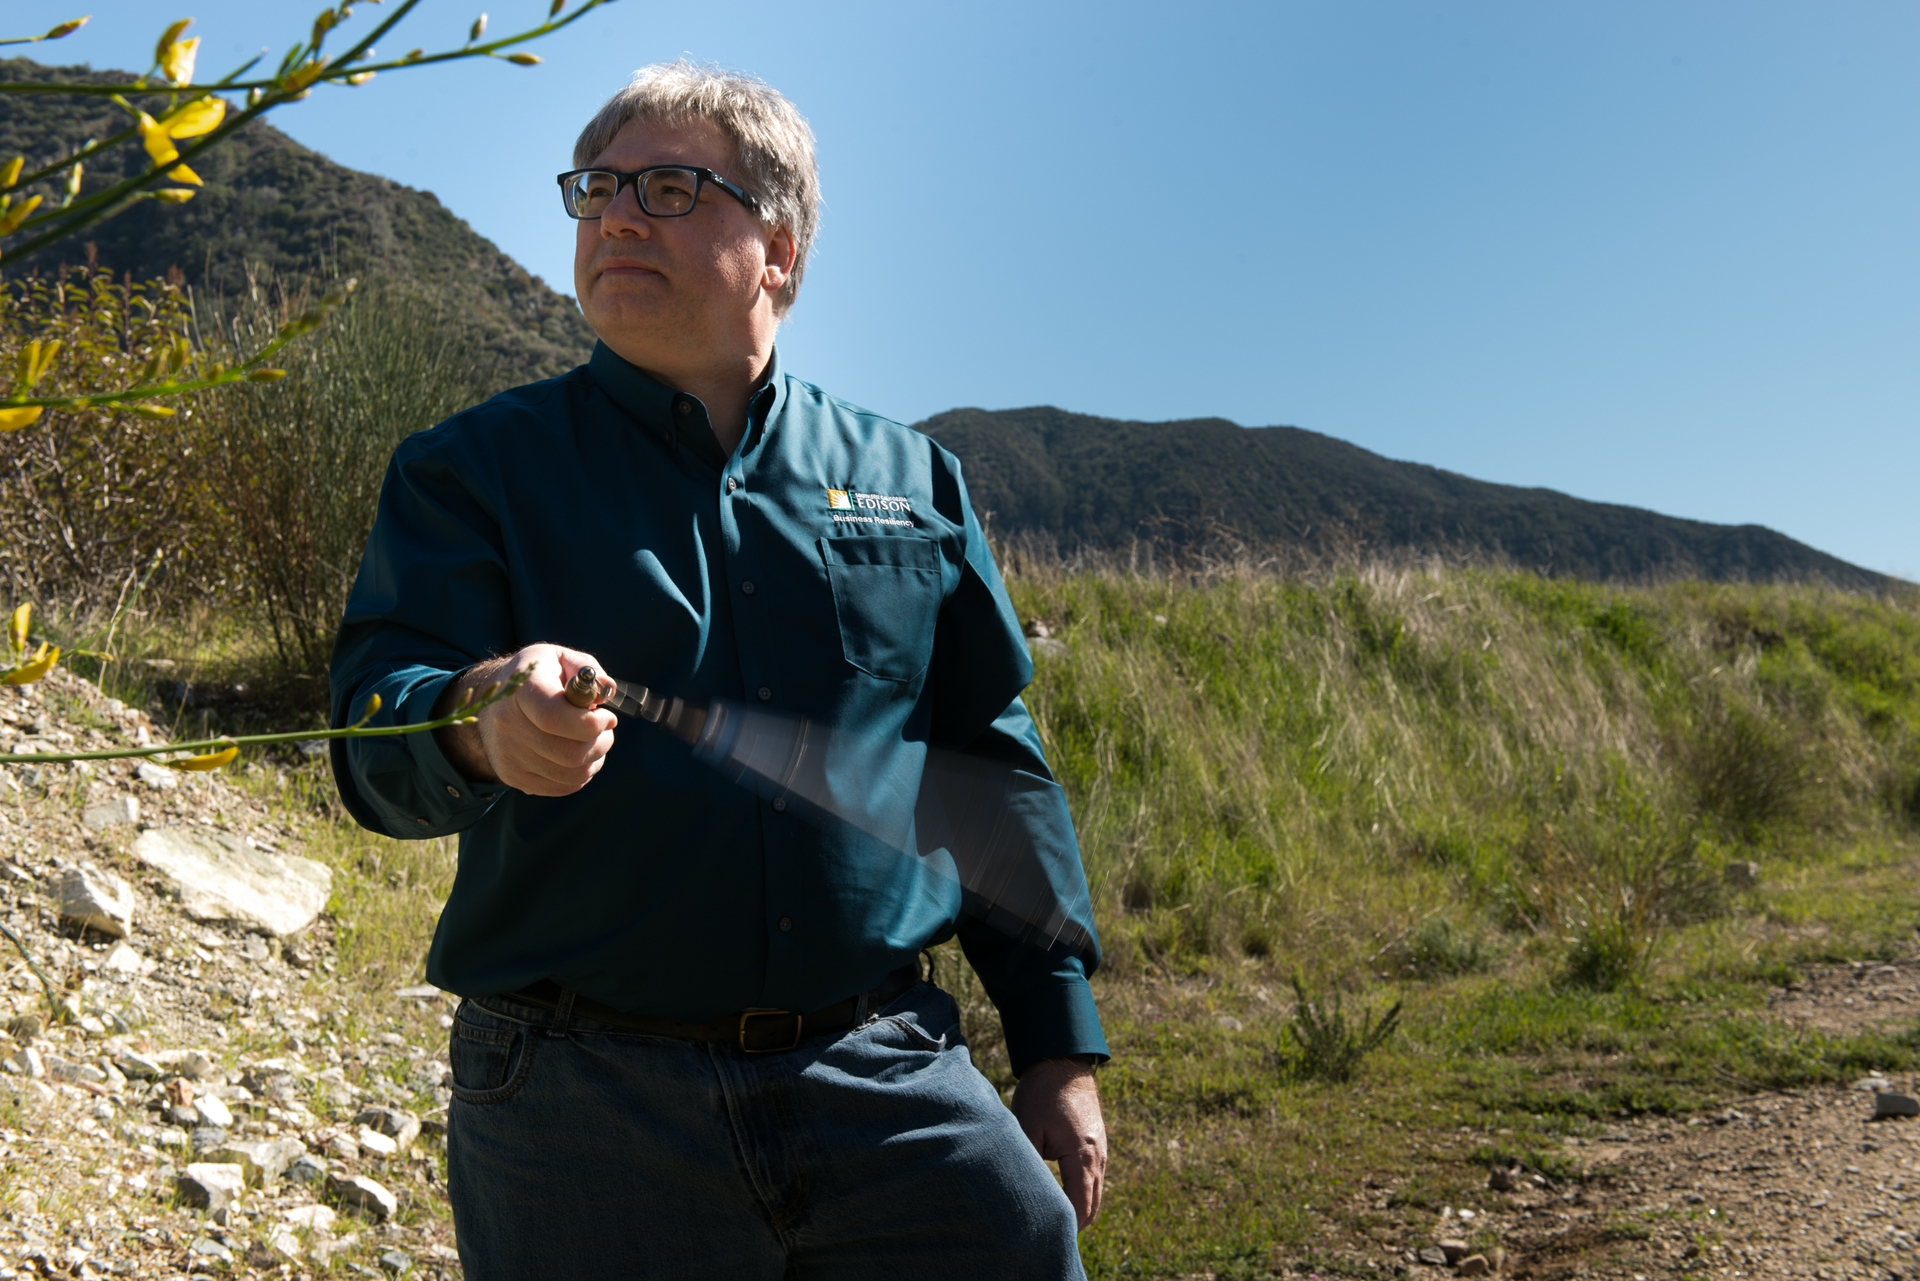 Tom Rolinski, SCE fire scientist, uses a sling psychrometer to measure the temperature and humidity.